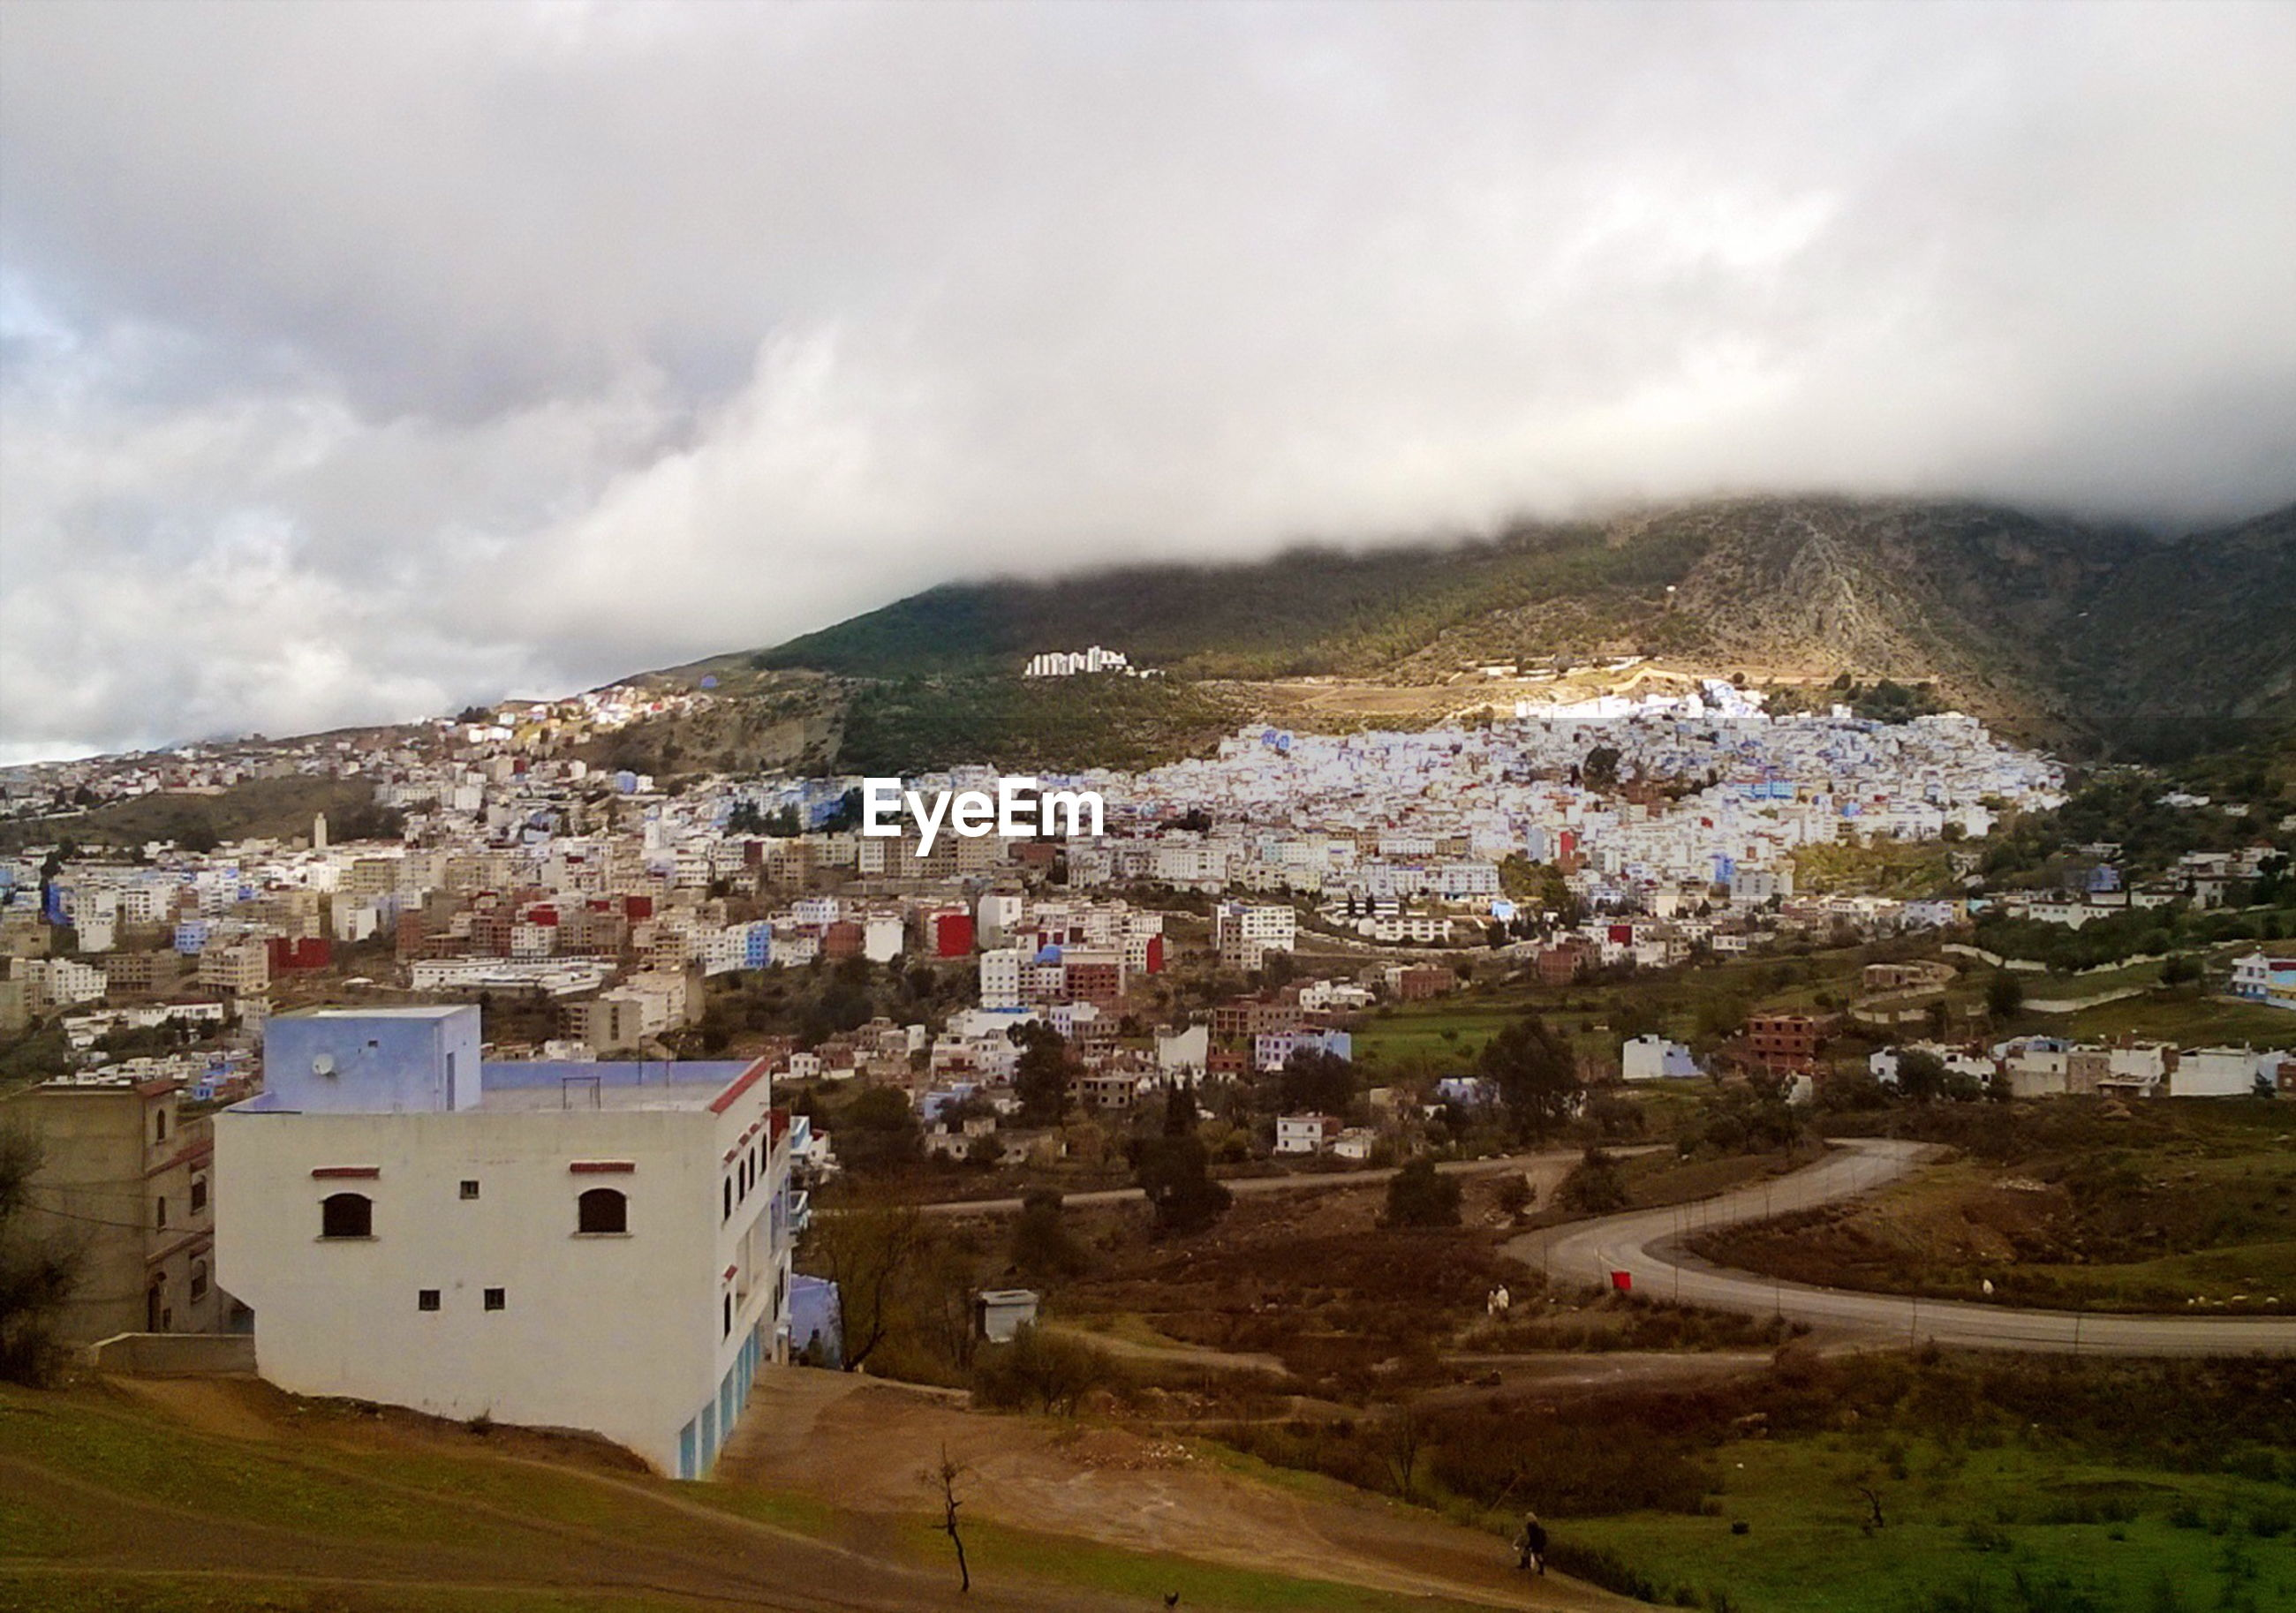 Townscape by mountain against cloudy sky